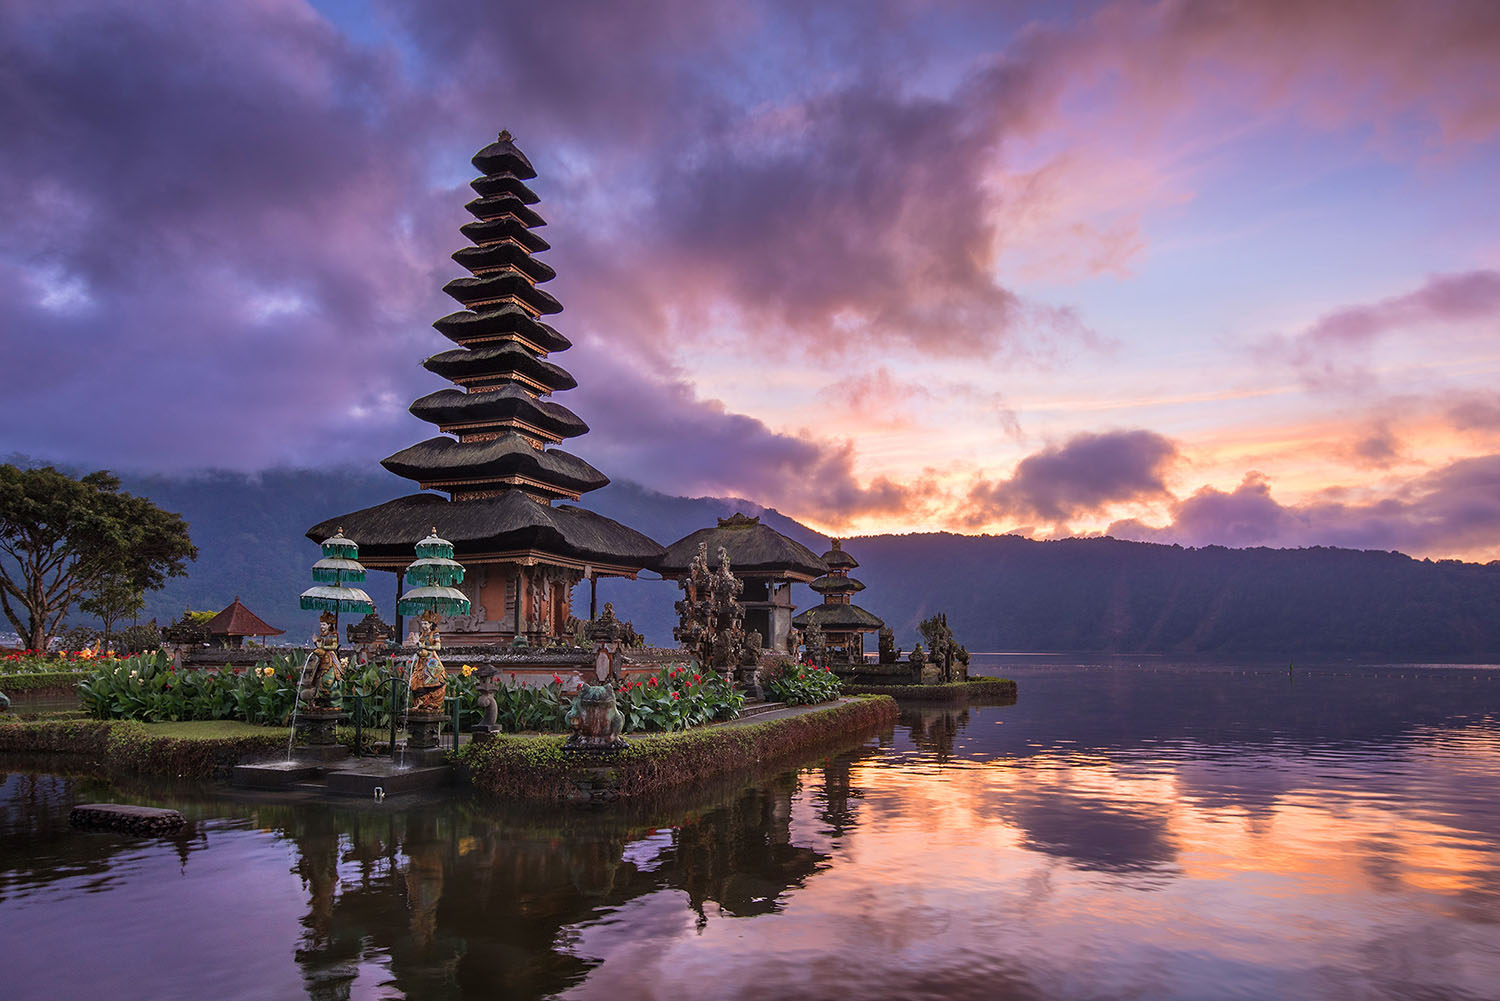 Bali water temple Donald Yip